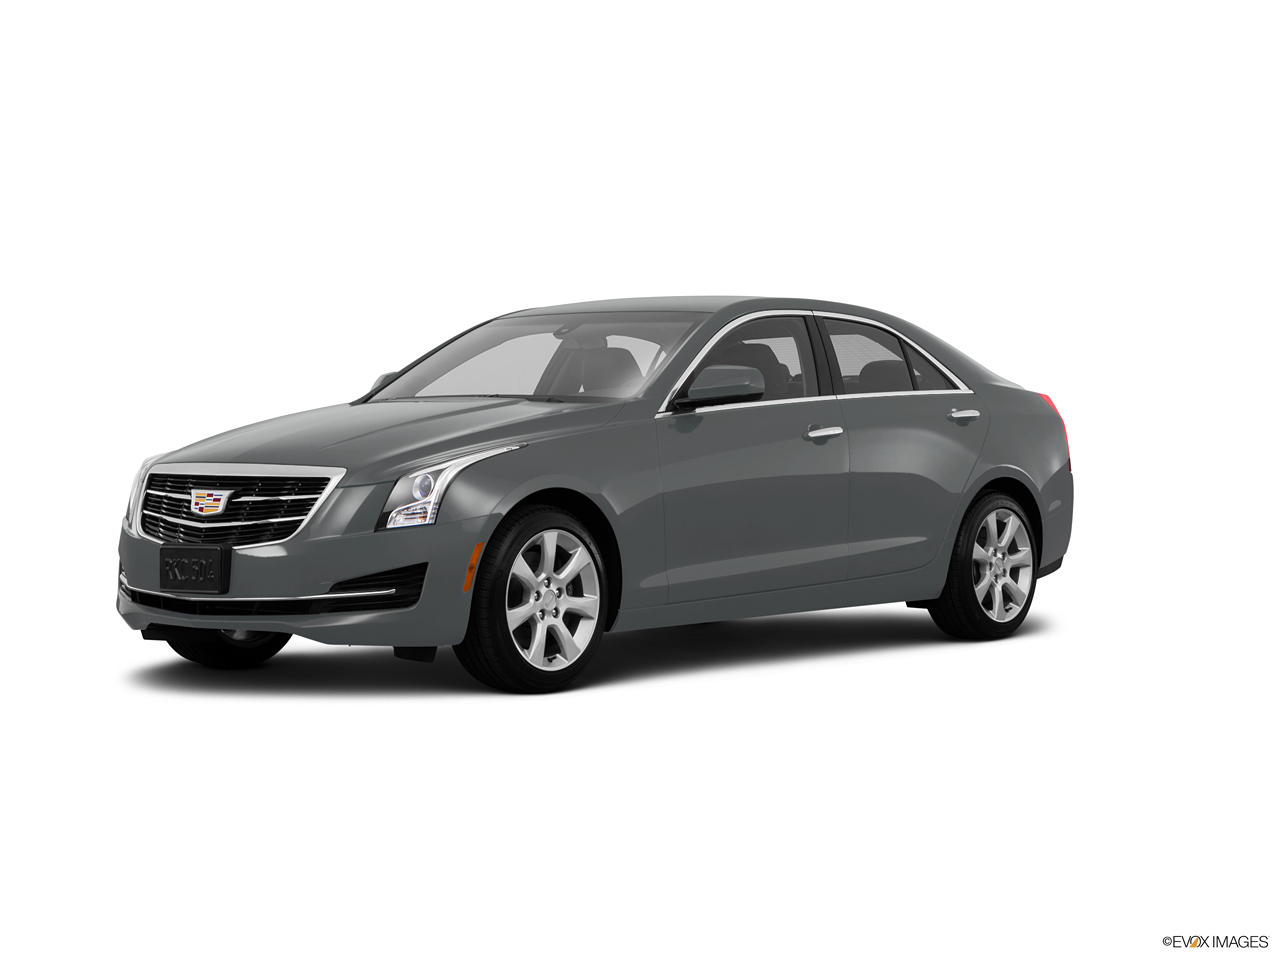 car pictures list for cadillac ats 2016 2 5l oman. Black Bedroom Furniture Sets. Home Design Ideas